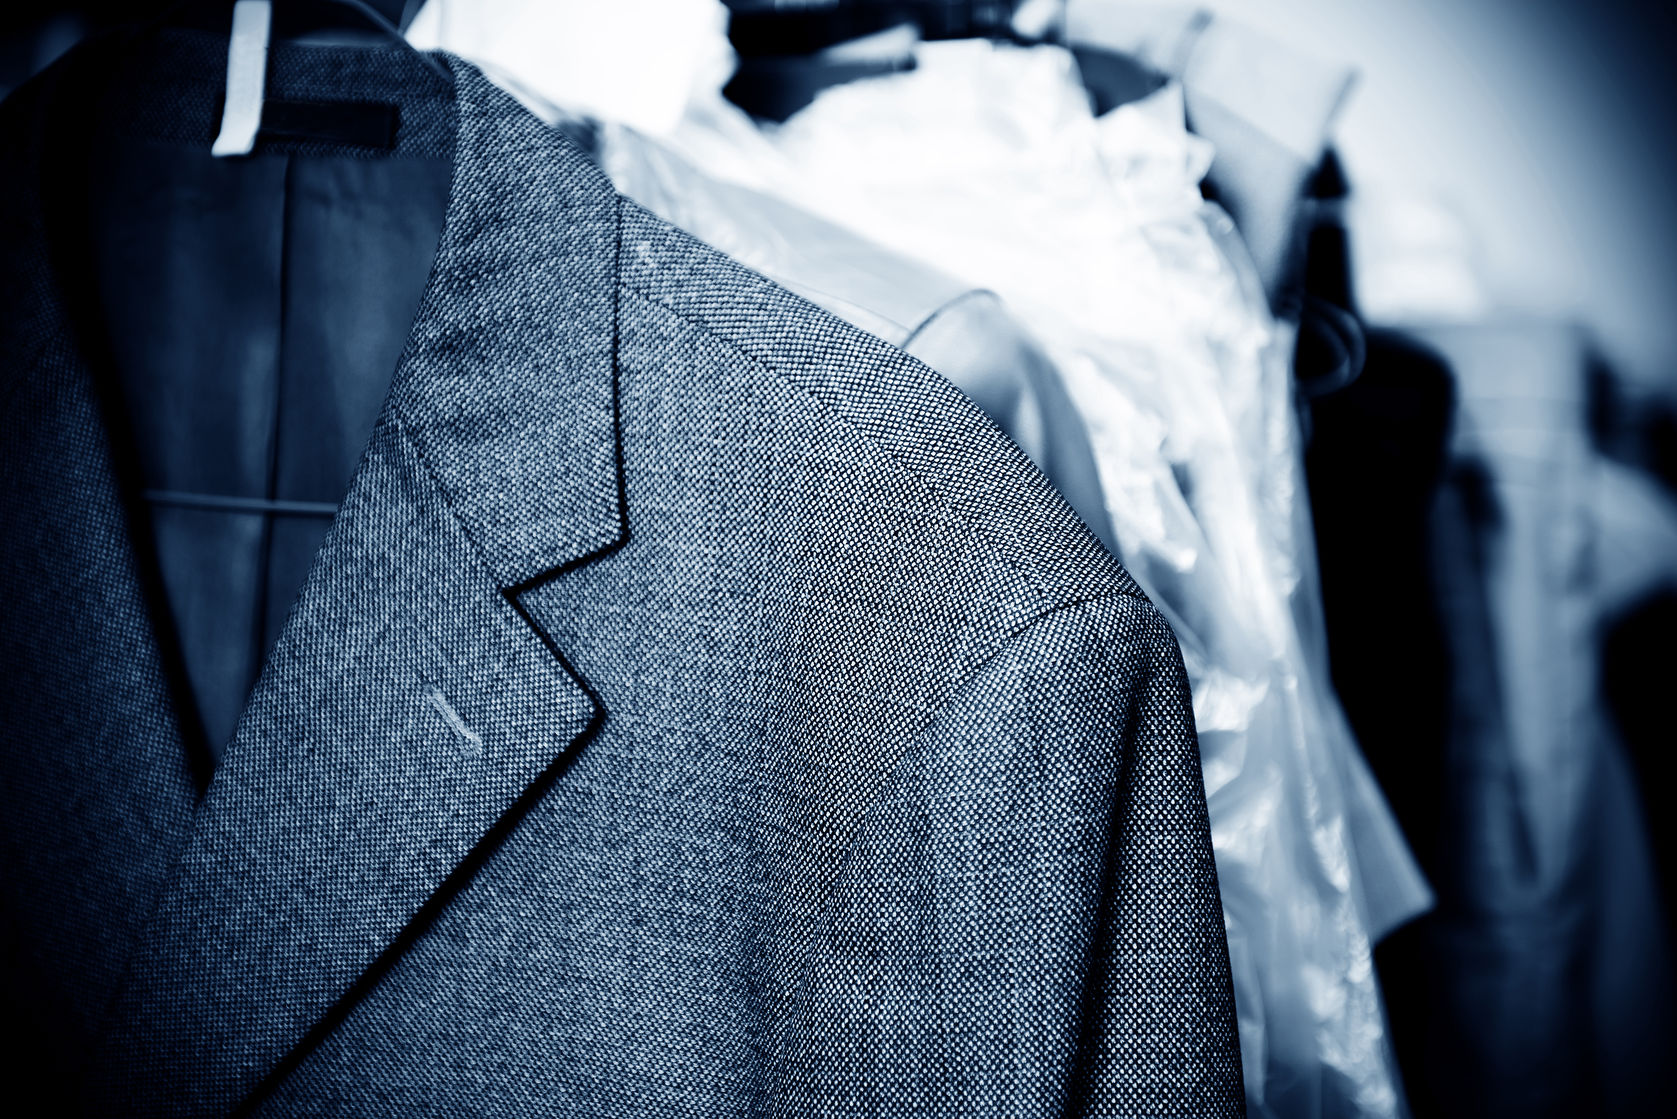 Scottsdale Dry Cleaning Laundry & Dry Cleaning Etiquette